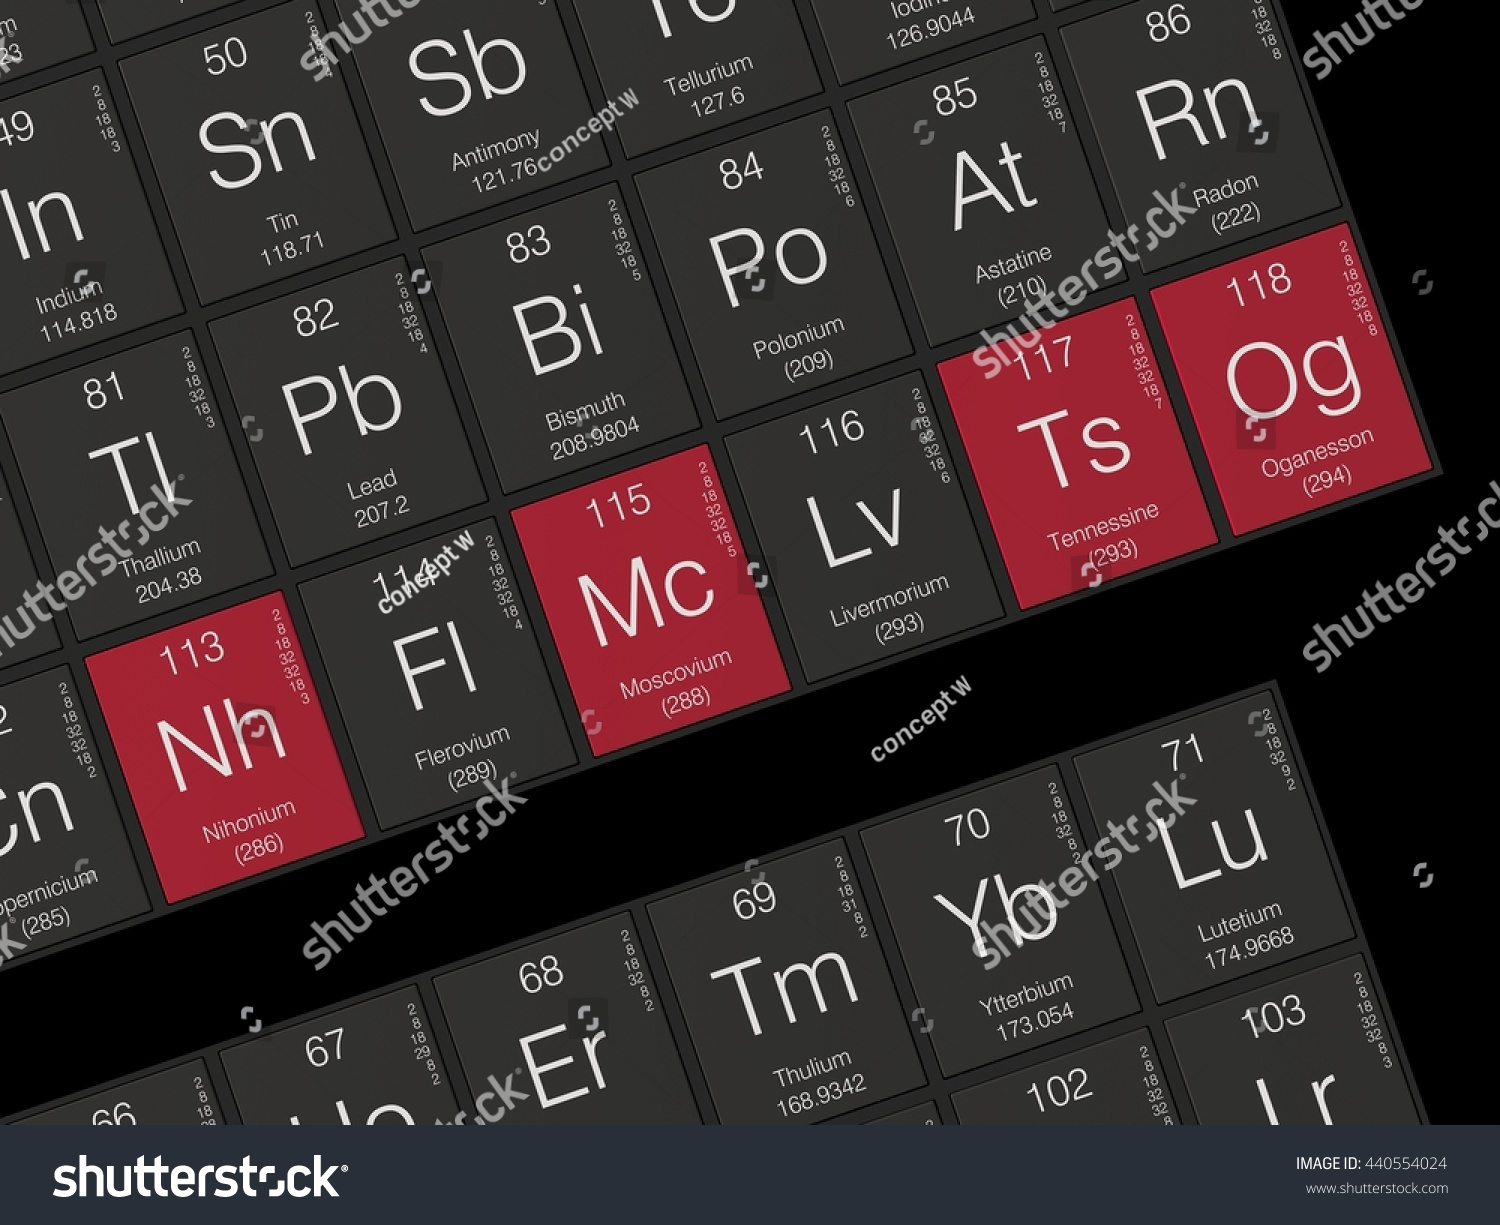 Nihonium 113 moscovium 115 tennessine 115 and oganesson for 115 on the periodic table